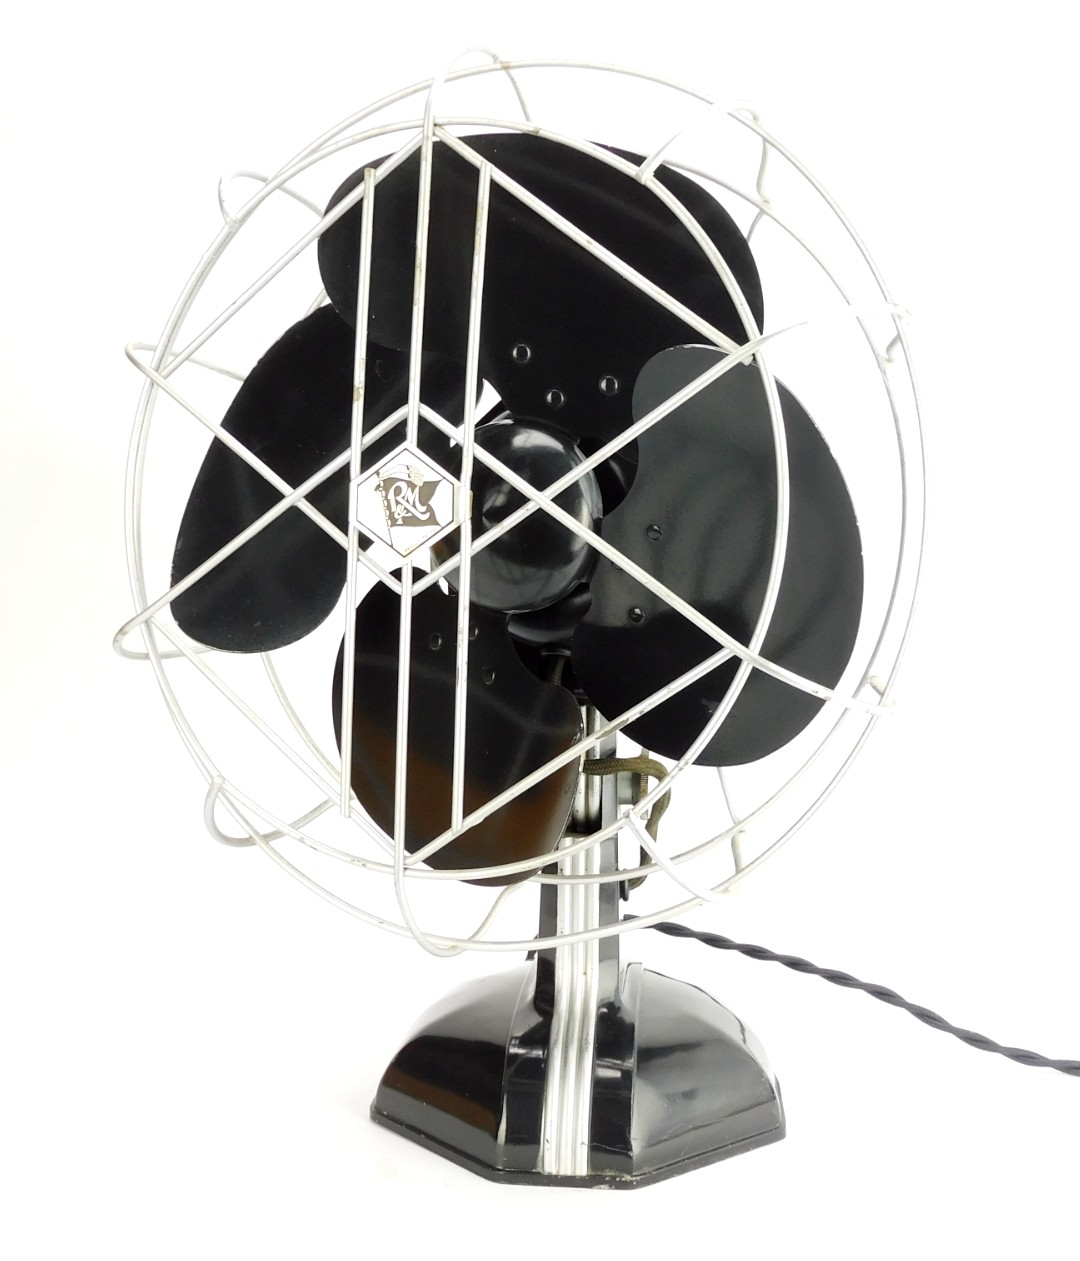 "Circa 1937 10"" Robbins & Myers Oscillating Desk Fan Original"